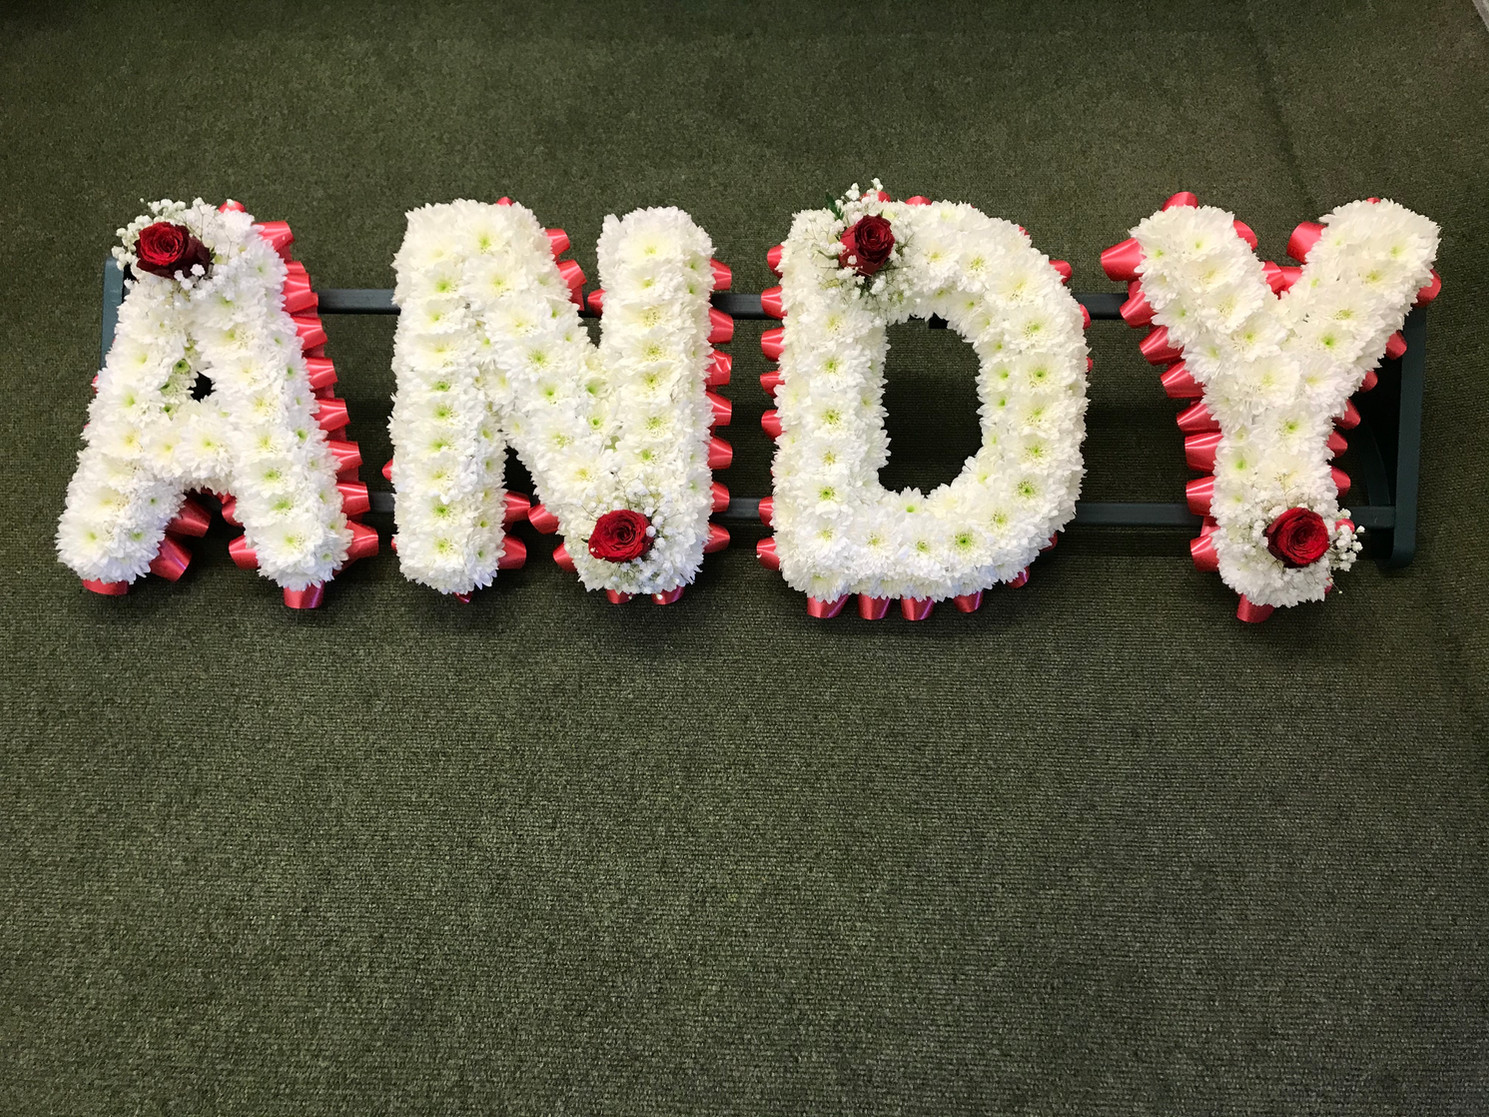 Andy in Letters